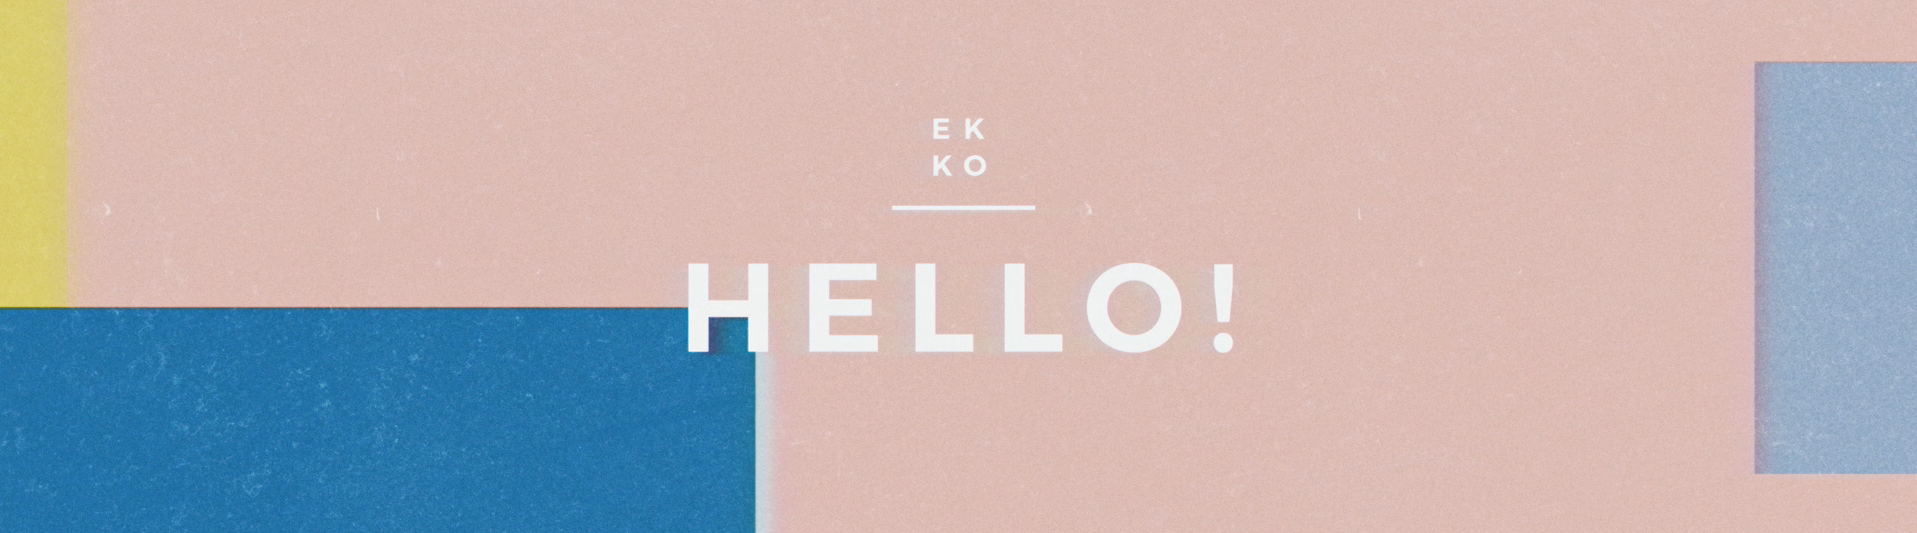 HELLO_1.png